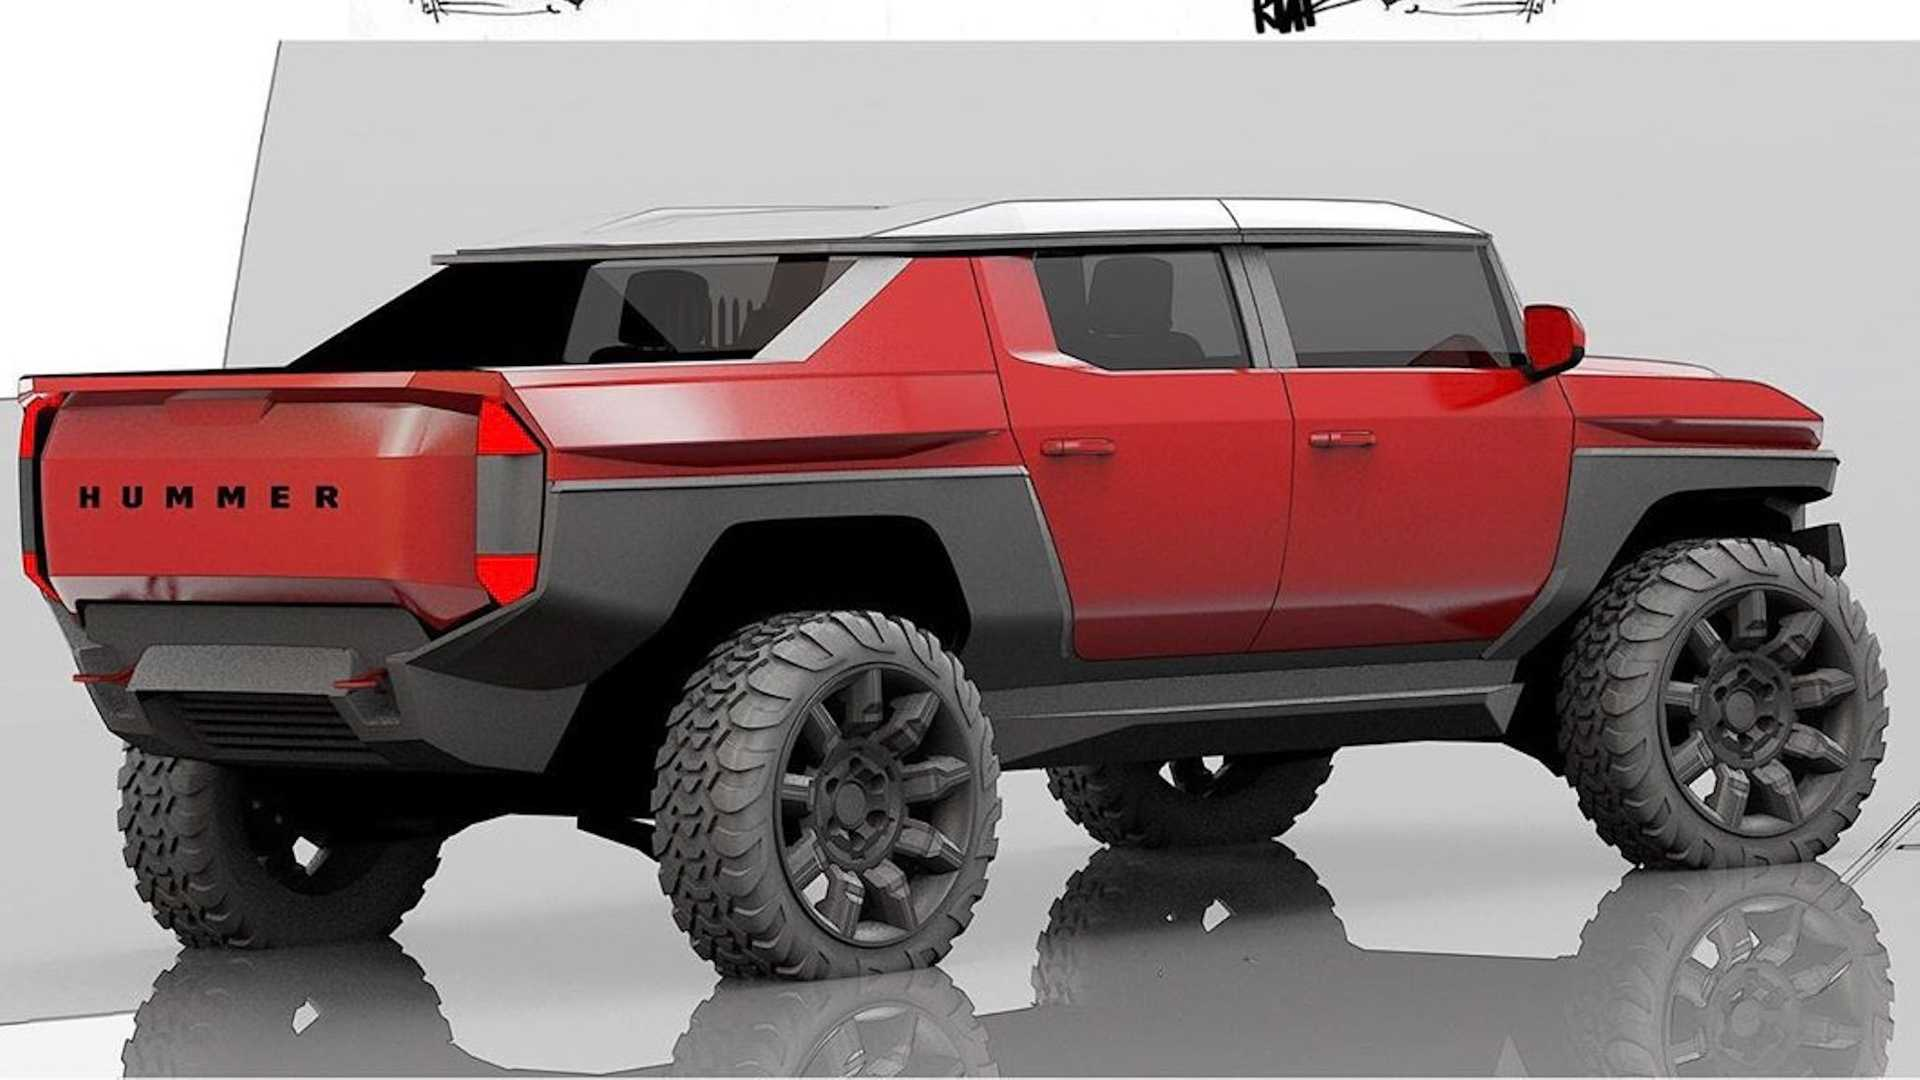 2022-gmc-hummer-ev-sketches-5